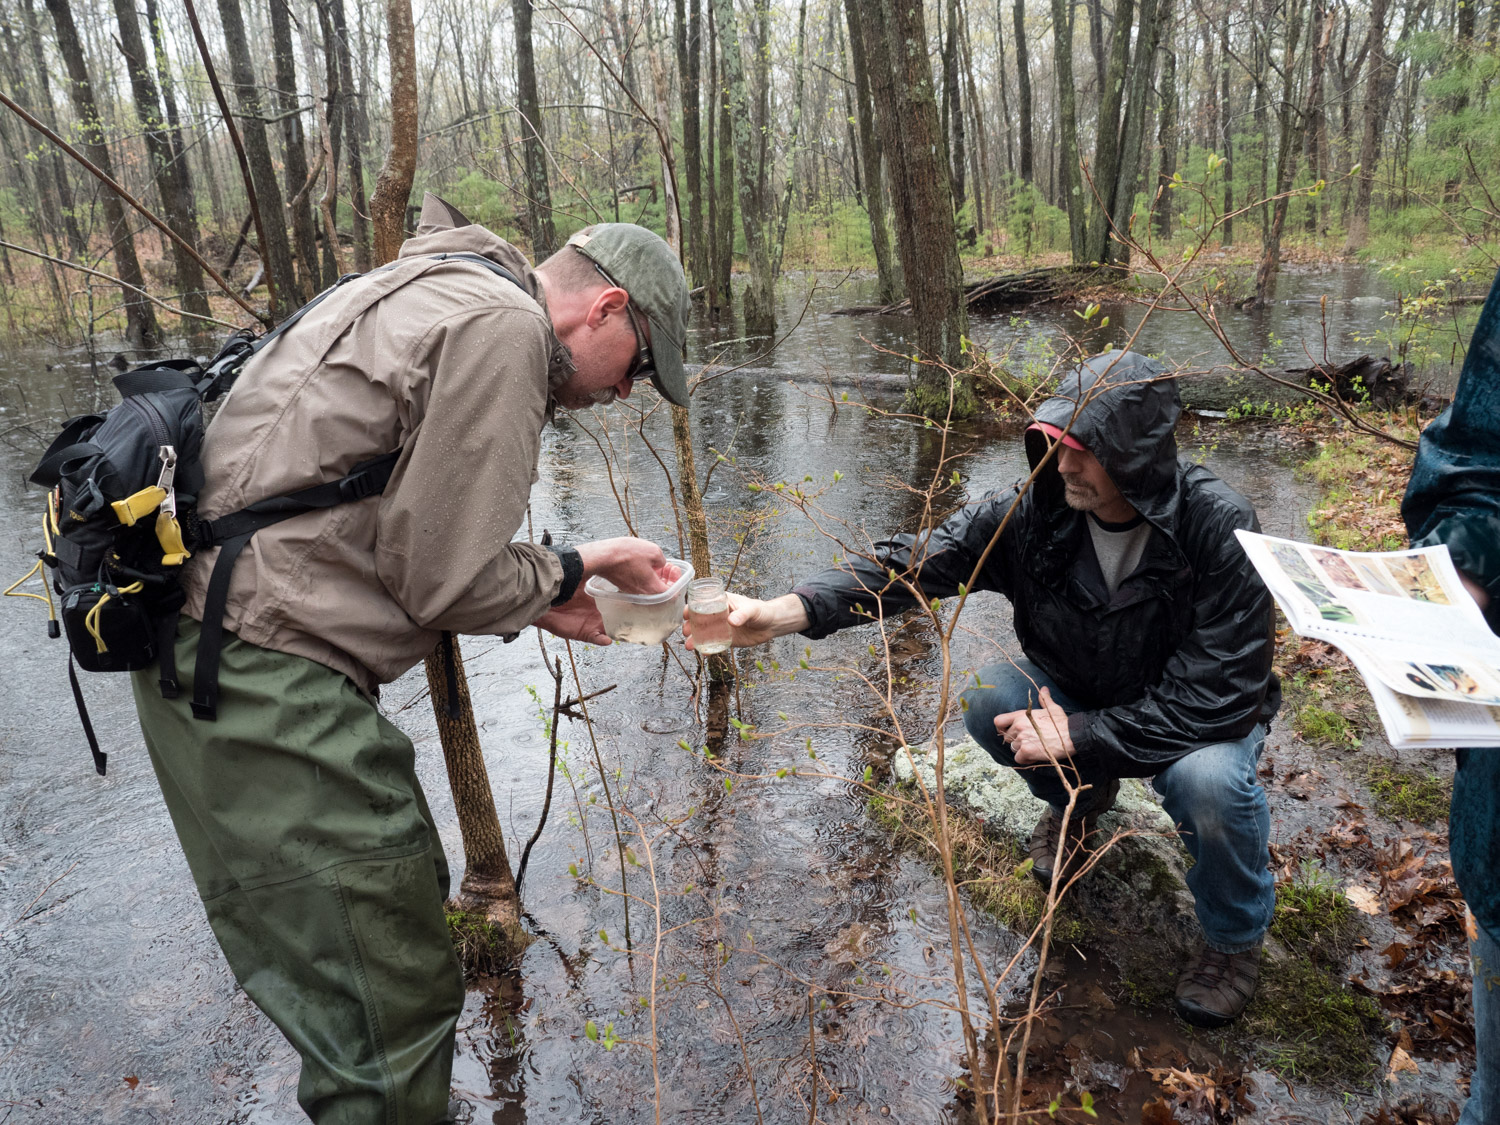 Finding vernal pool life forms at Mary Cummings Park